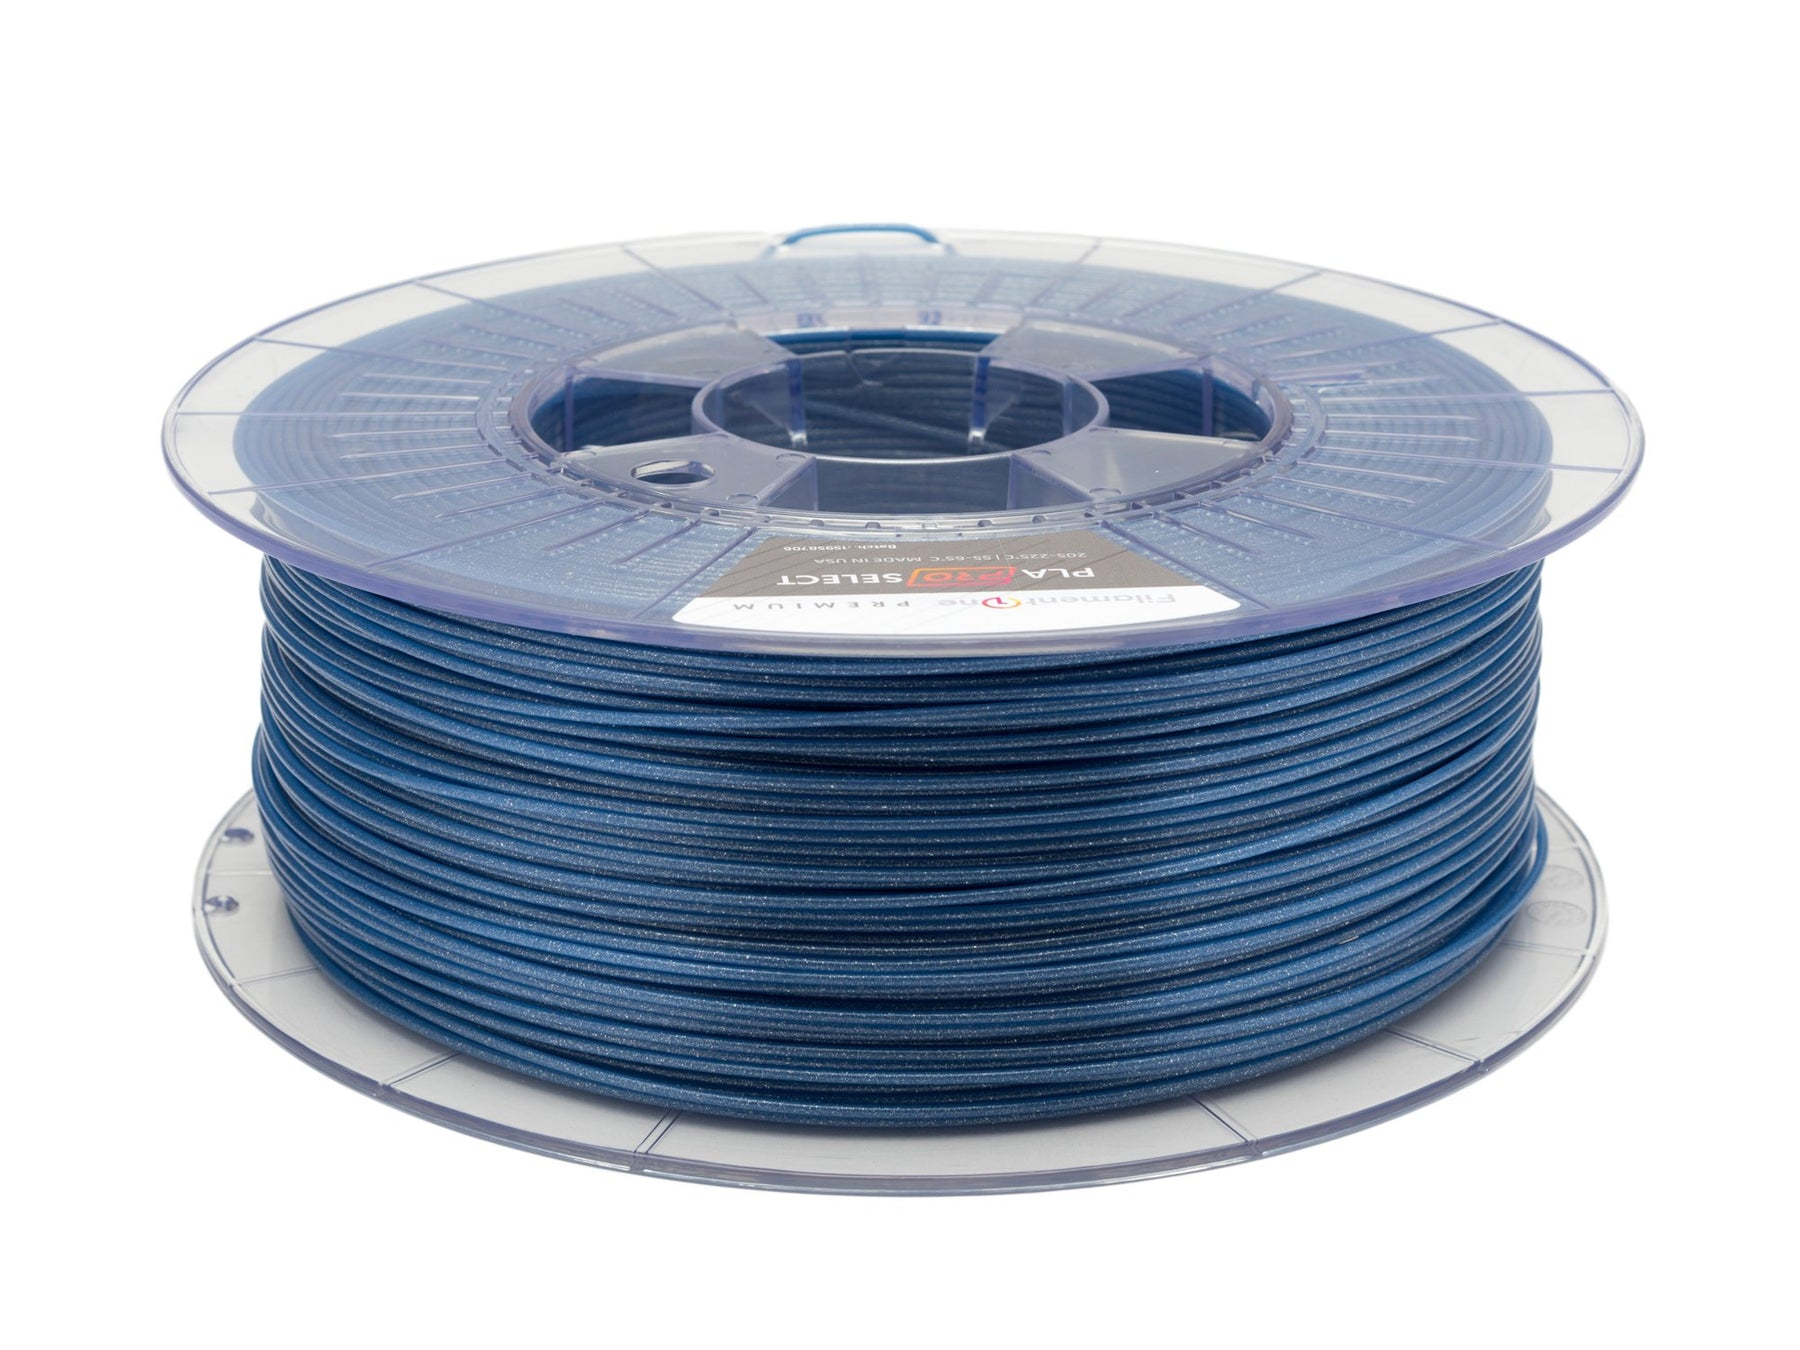 How to choose the best filament for your project